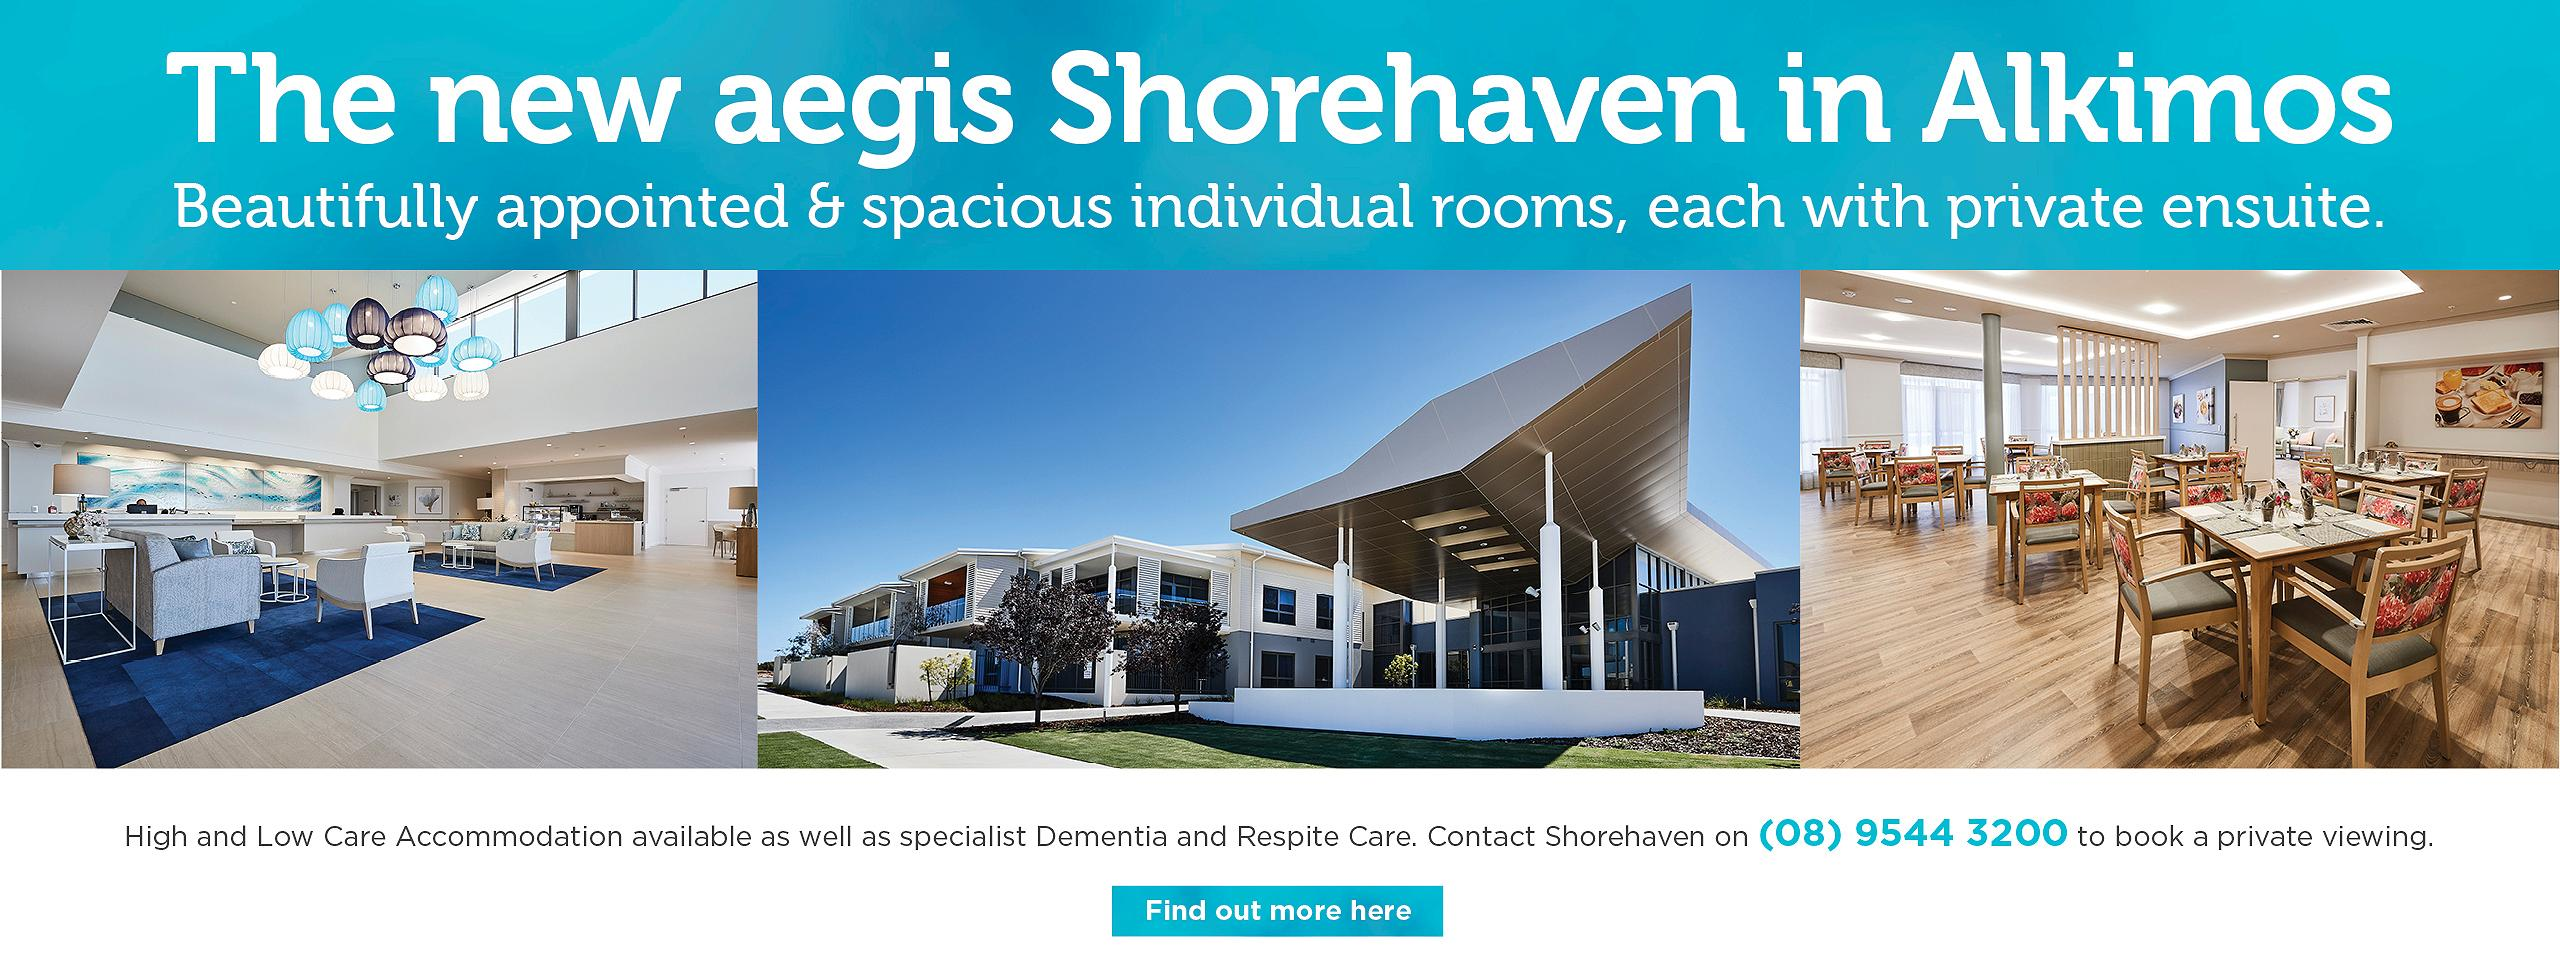 Aegis Shorehaven - Opening August 2020